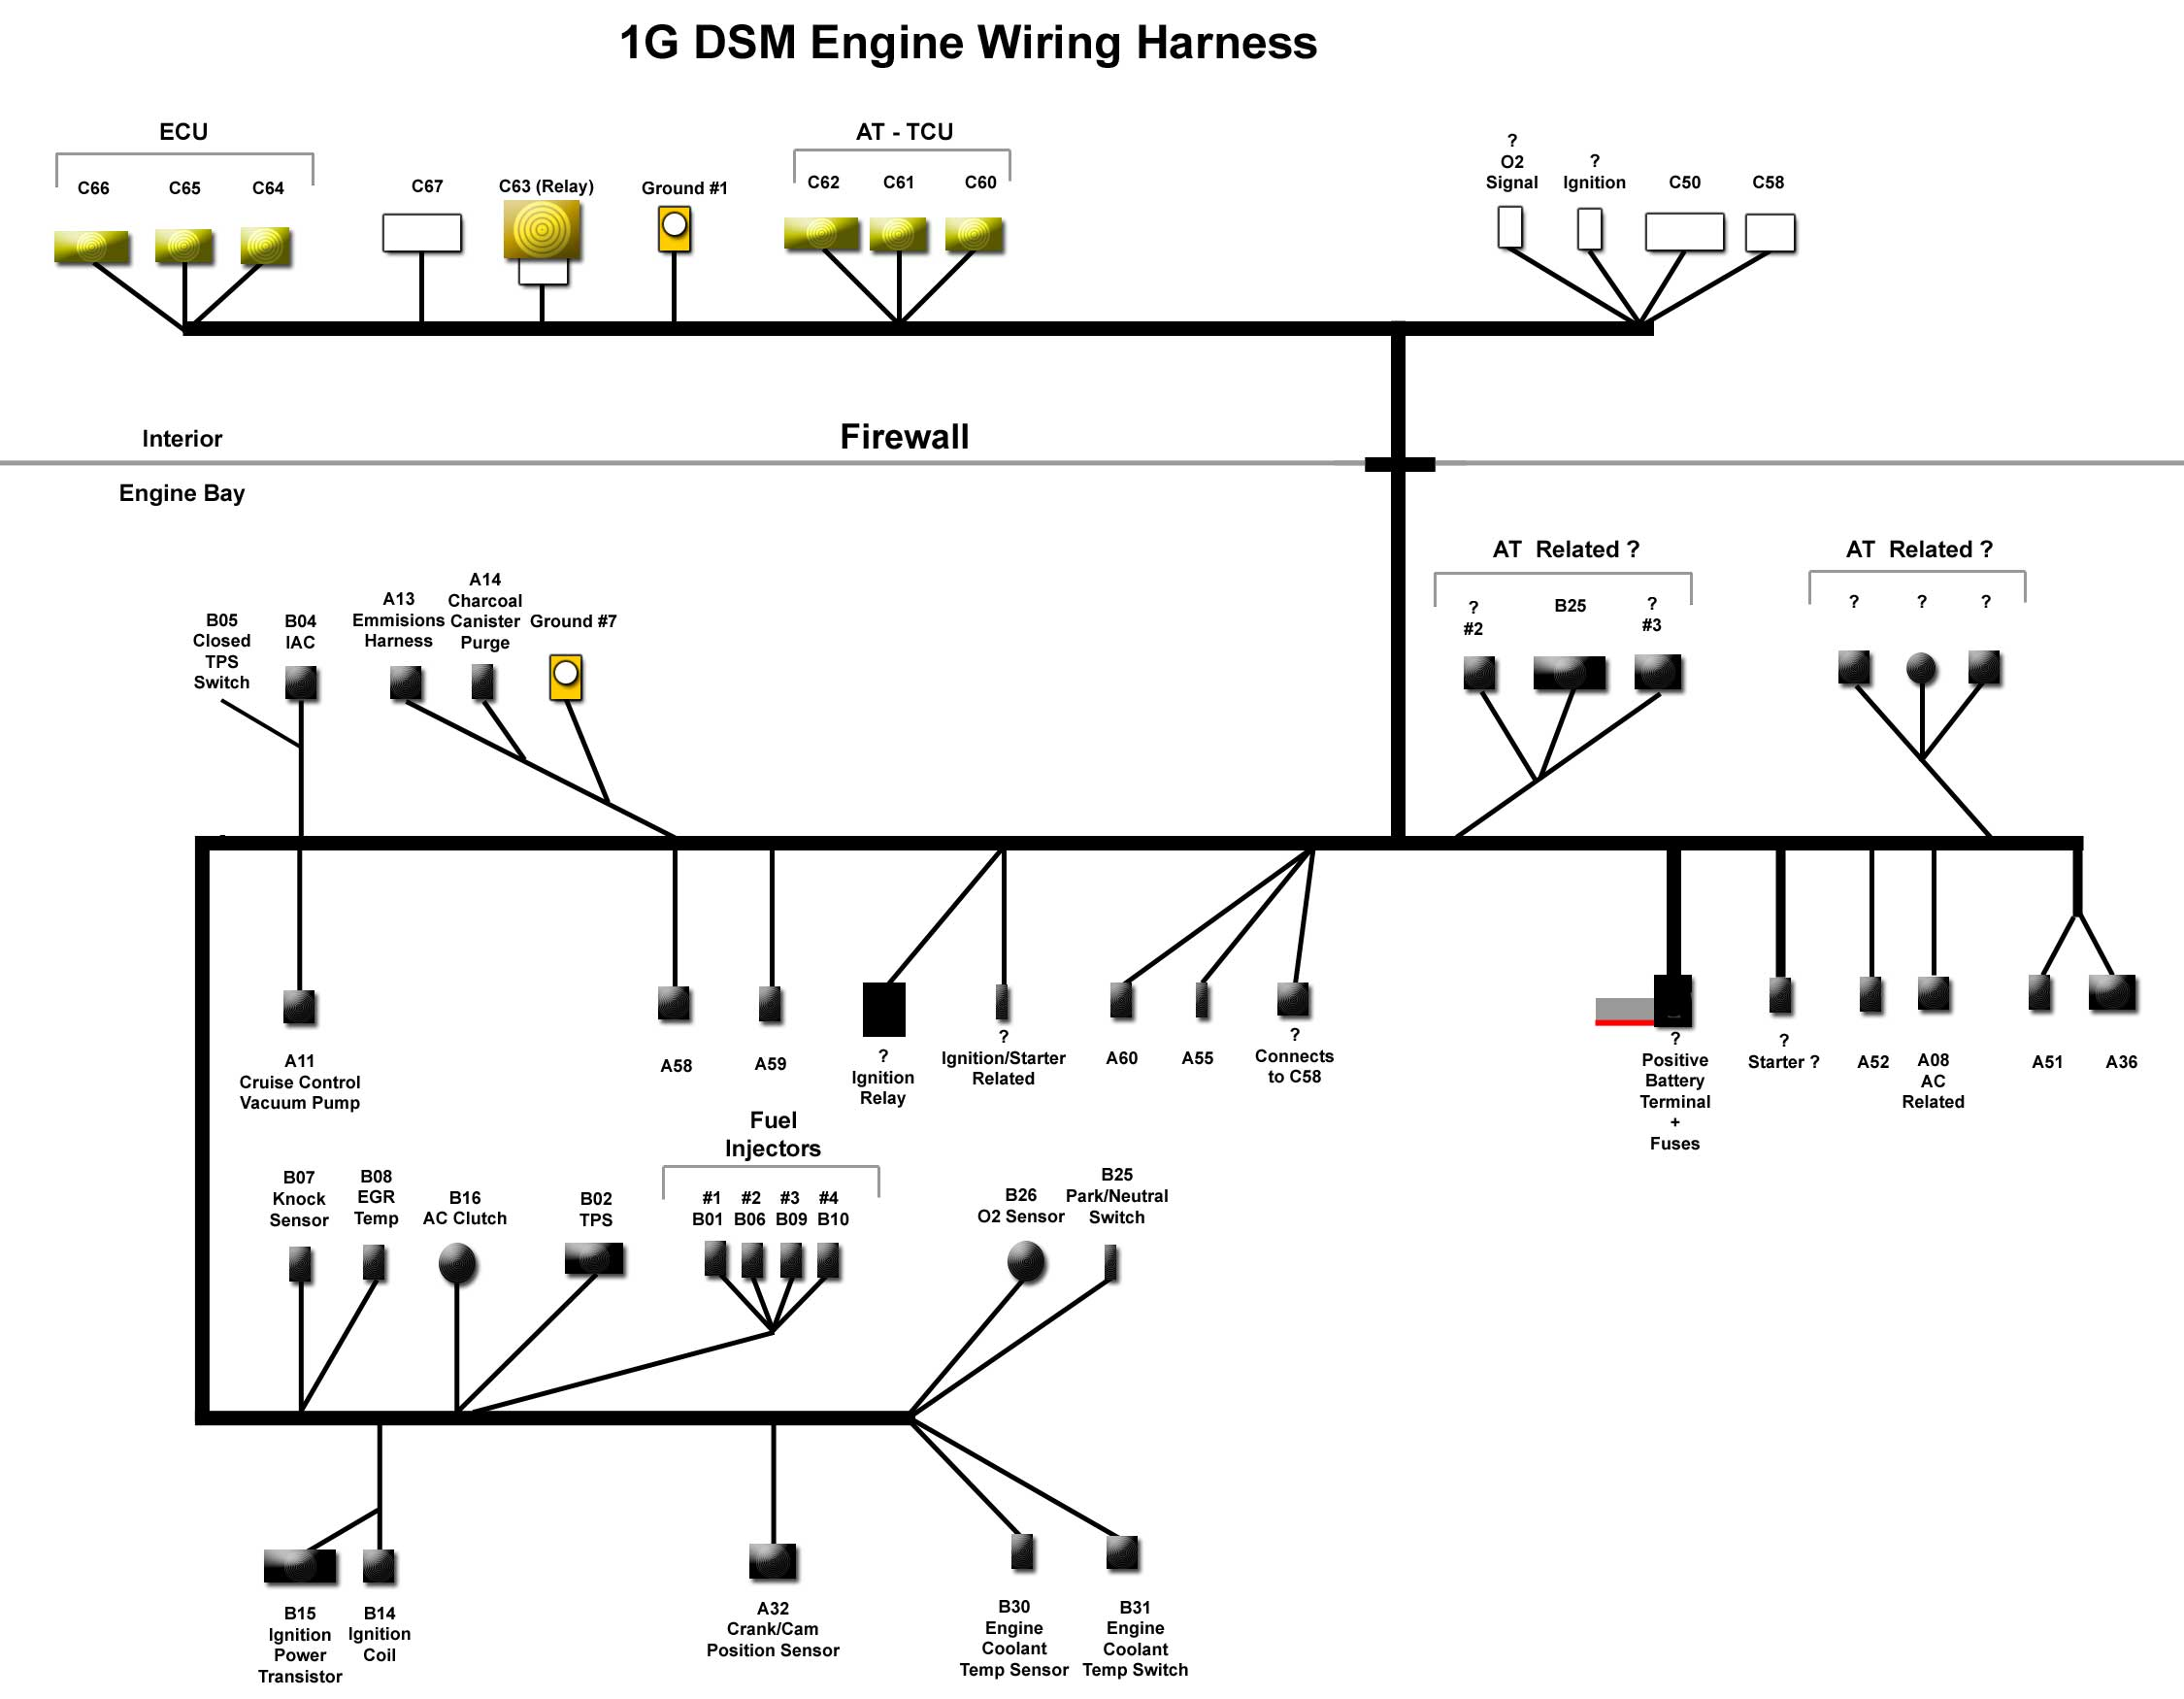 1G DSM EngineHarness wiring harness diagram readingrat net 2000 Mitsubishi Mirage Turbo Engine at soozxer.org